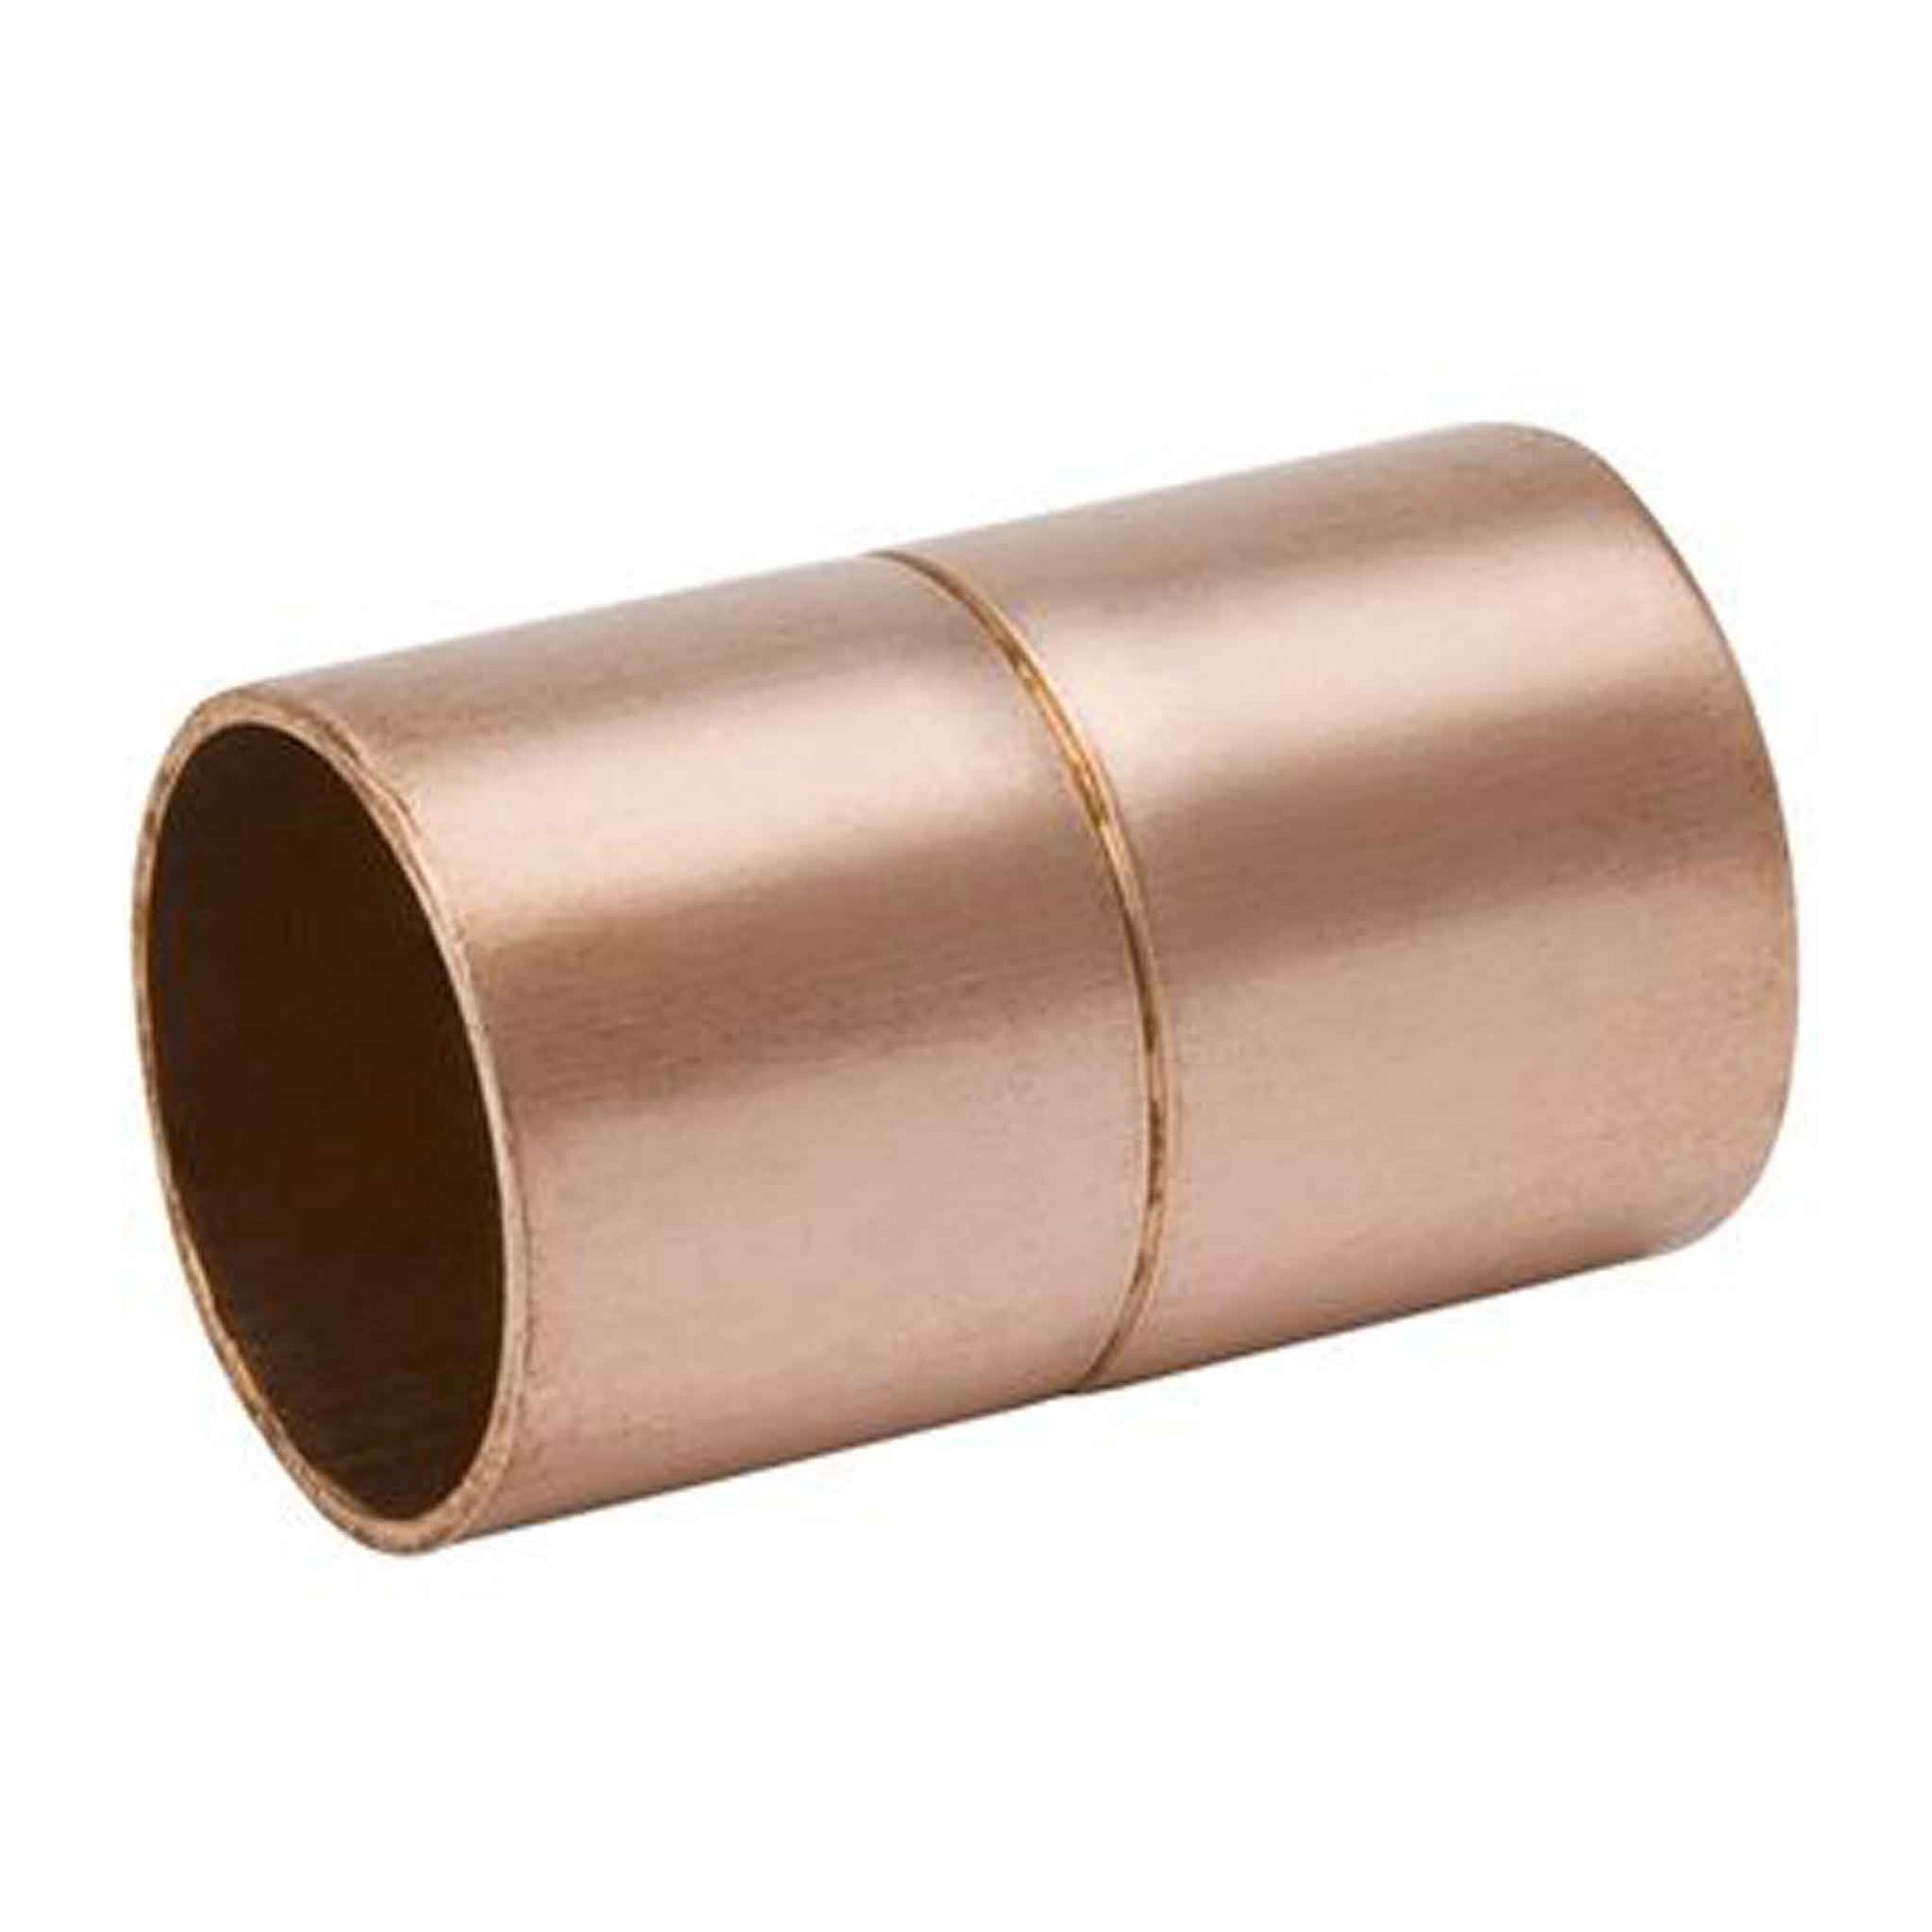 Copper Coupling w/Ring Stop